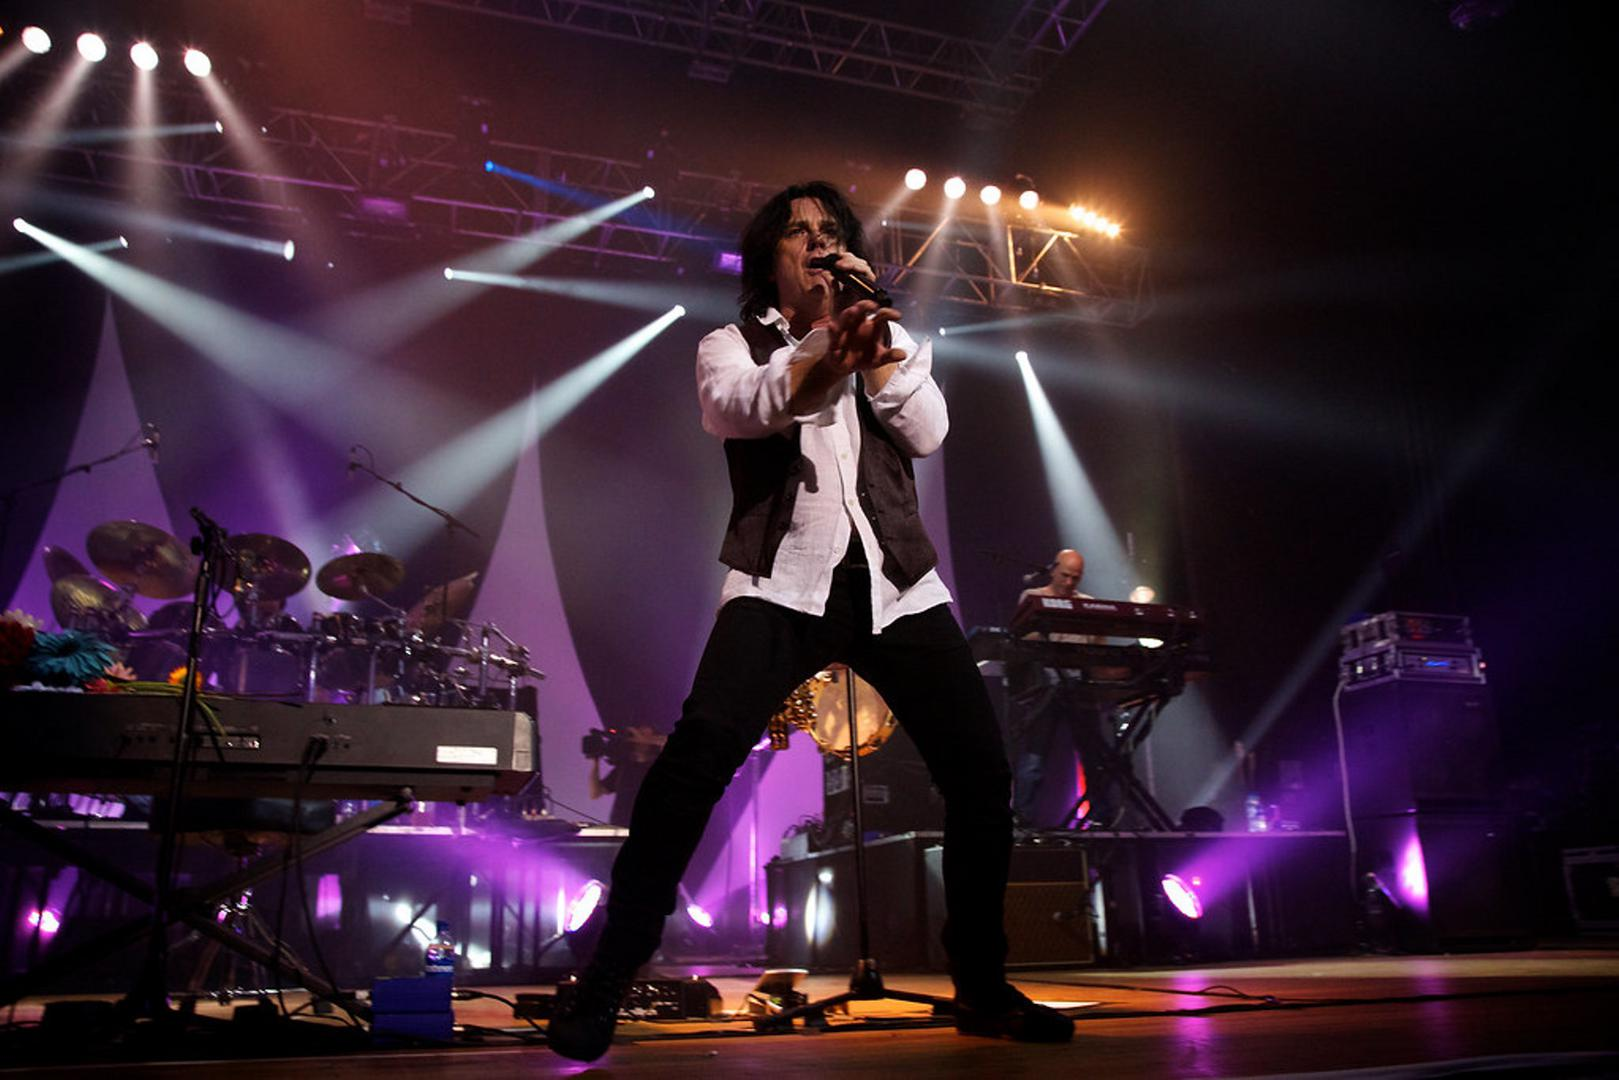 Steve Hogarth singing on stage with Marillion